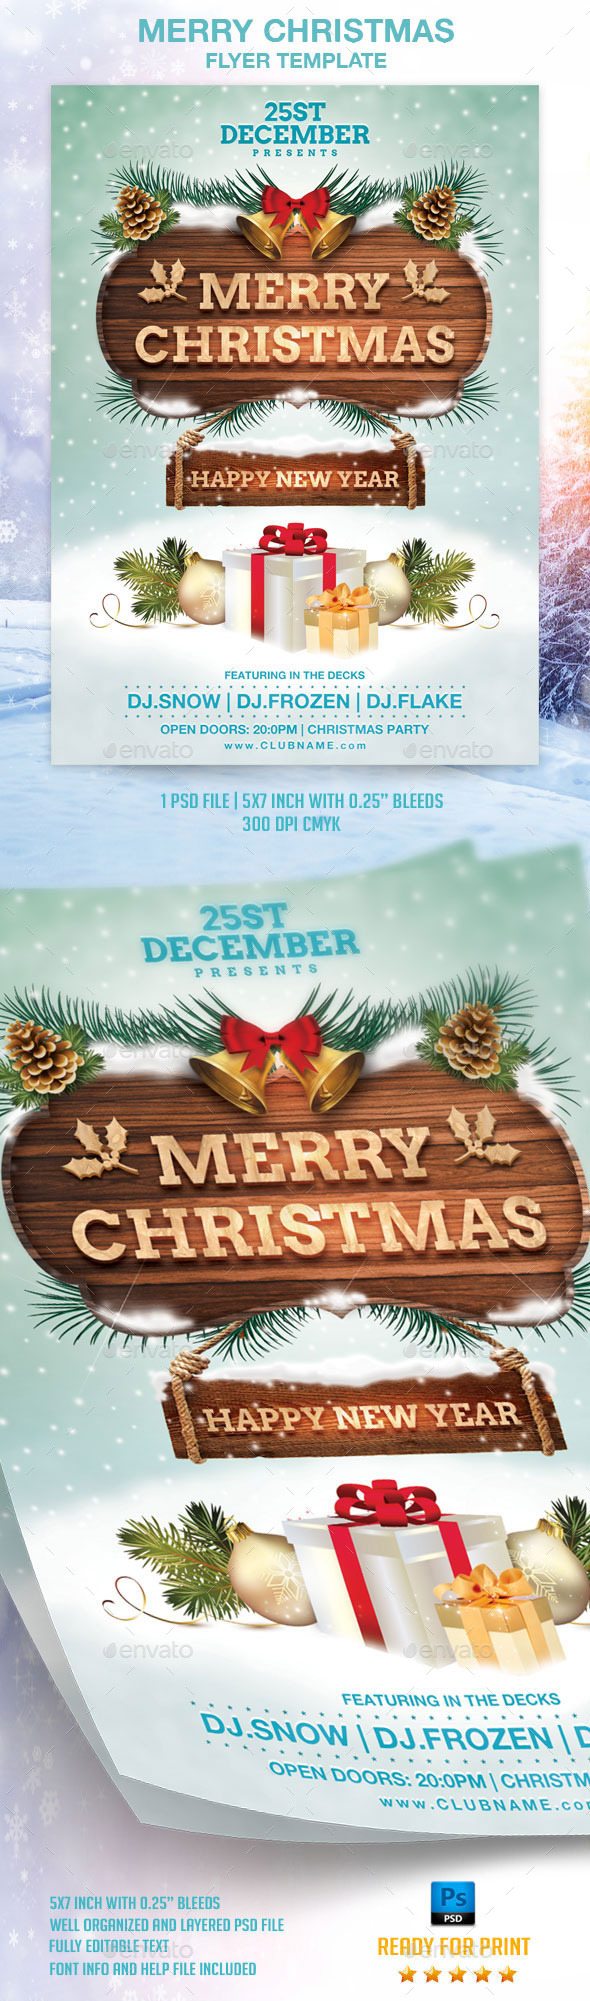 Merry Christmas Flyer Template - Flyers Print Templates